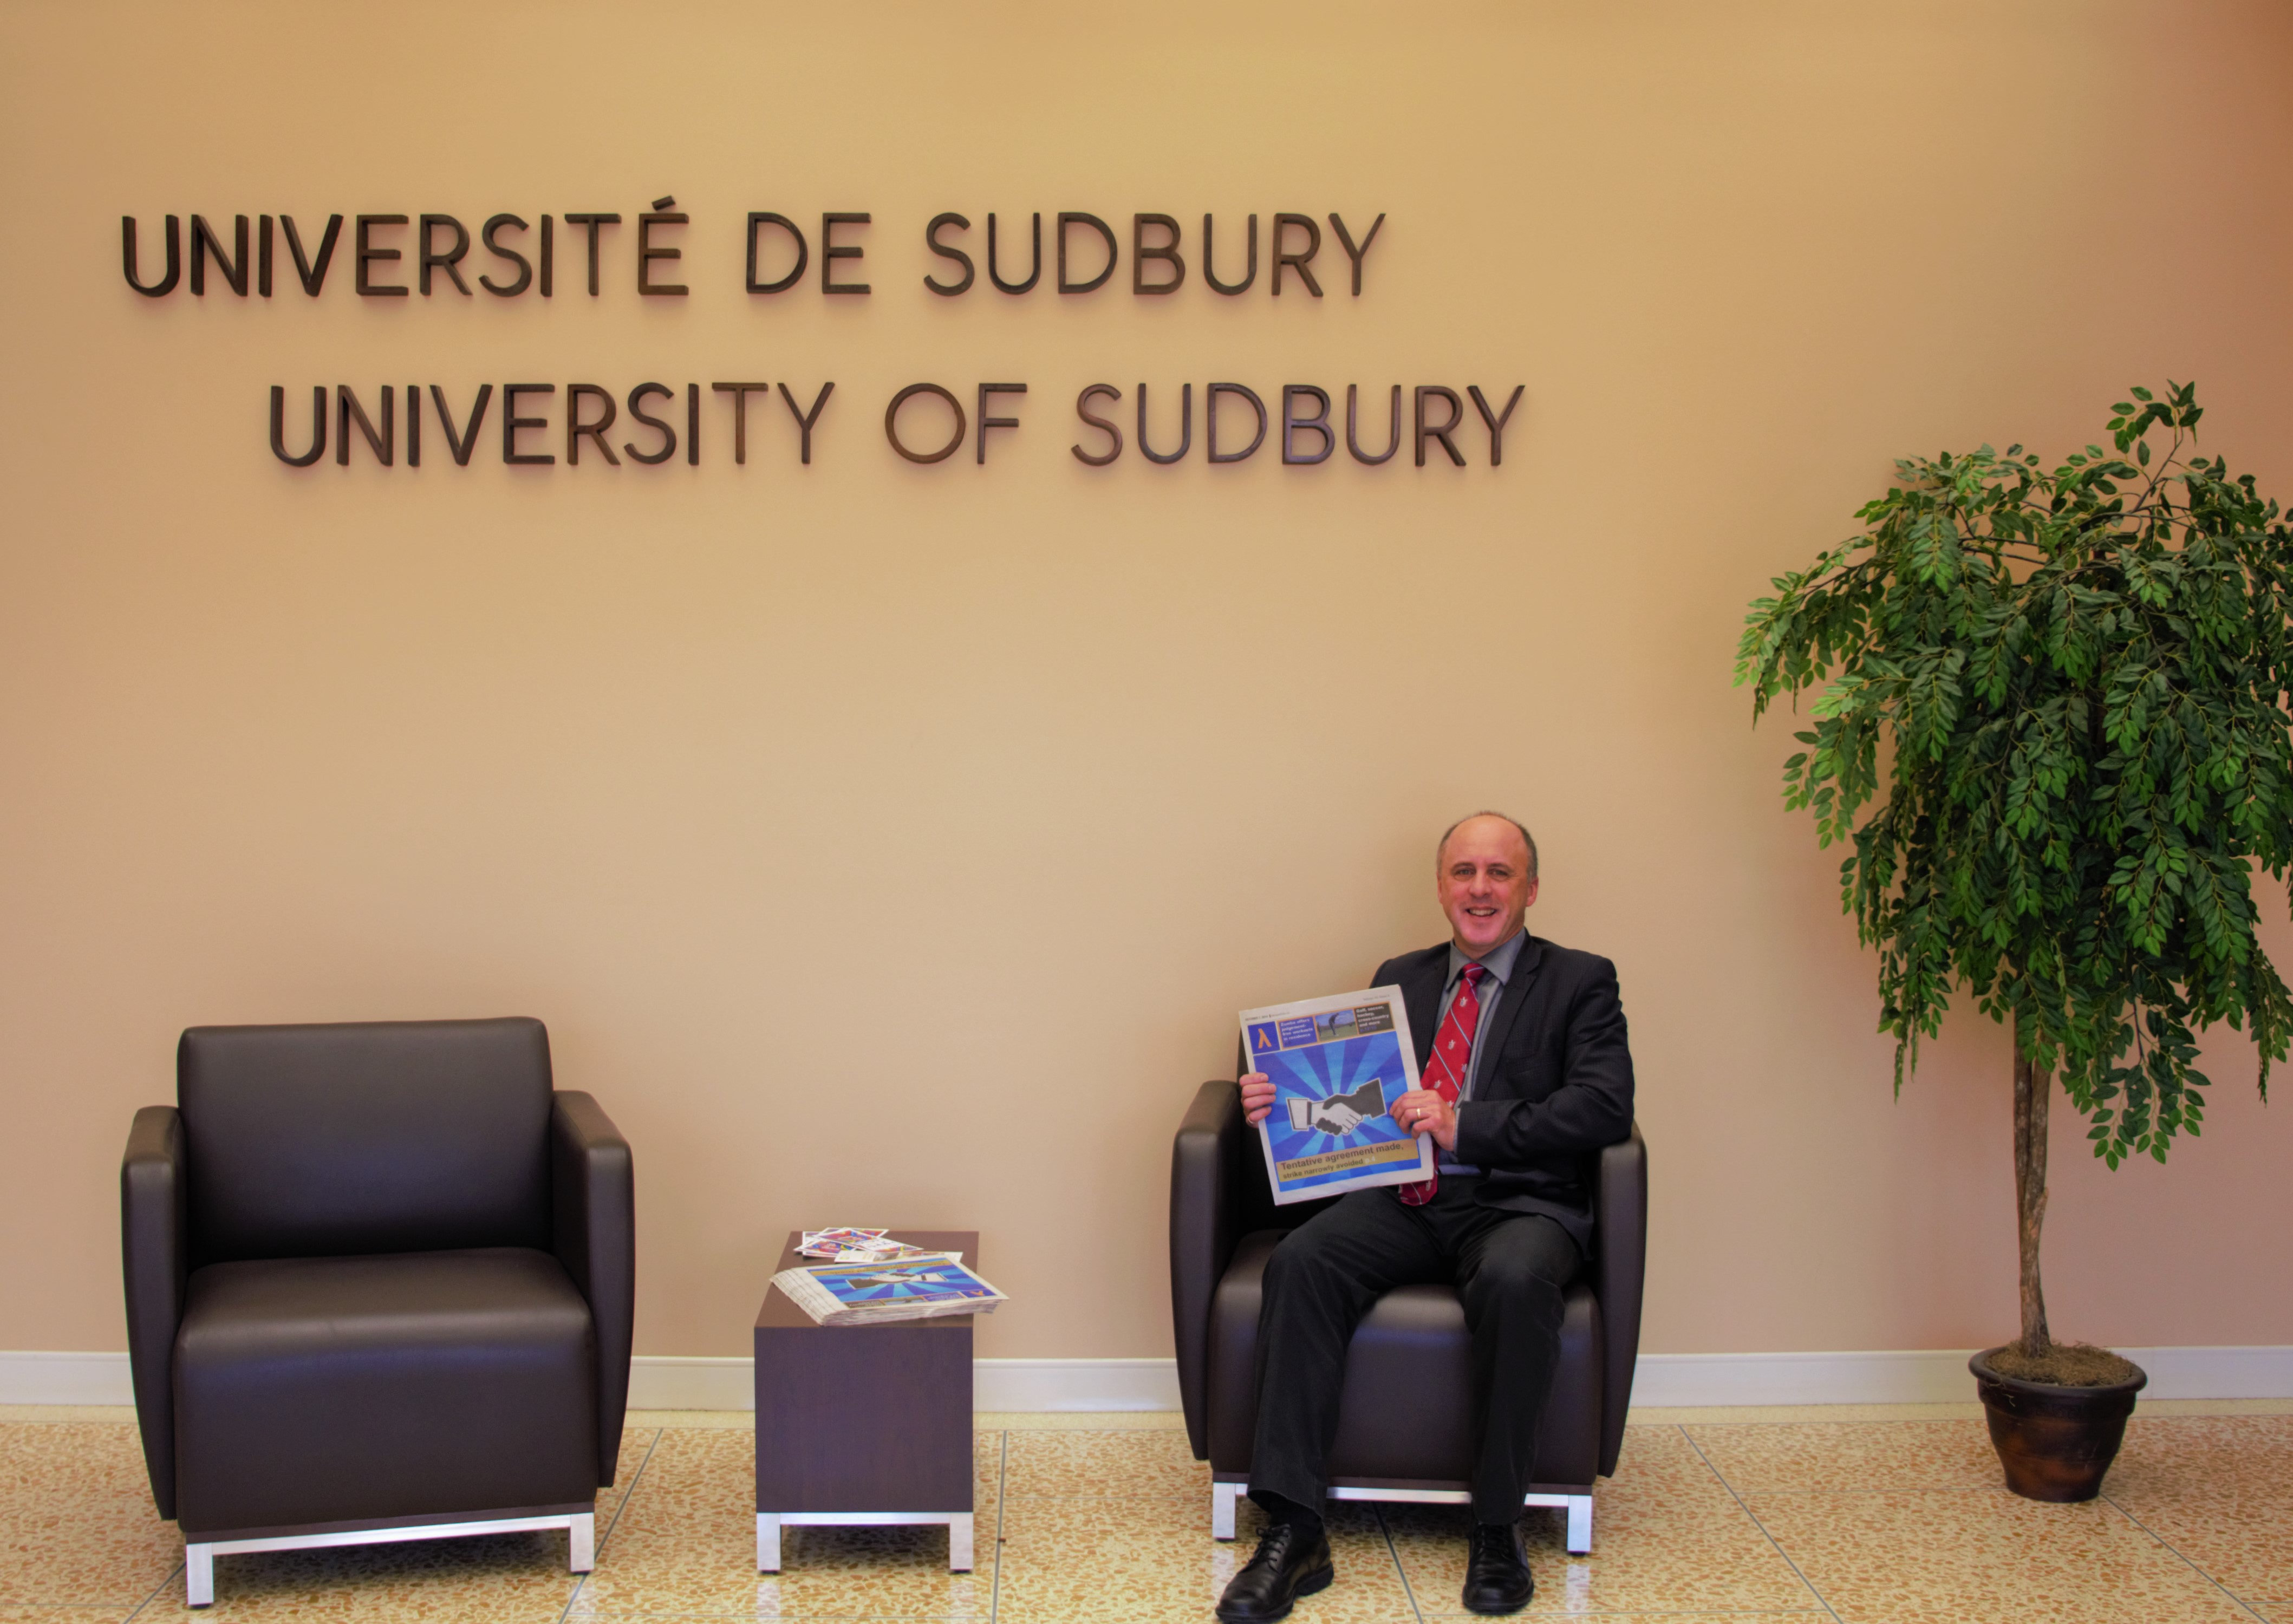 Pierre Zundel, President and Vice-Chancellor of the University of Sudbury, sits in the buildings lounge. Photo by Zara Golafshani.